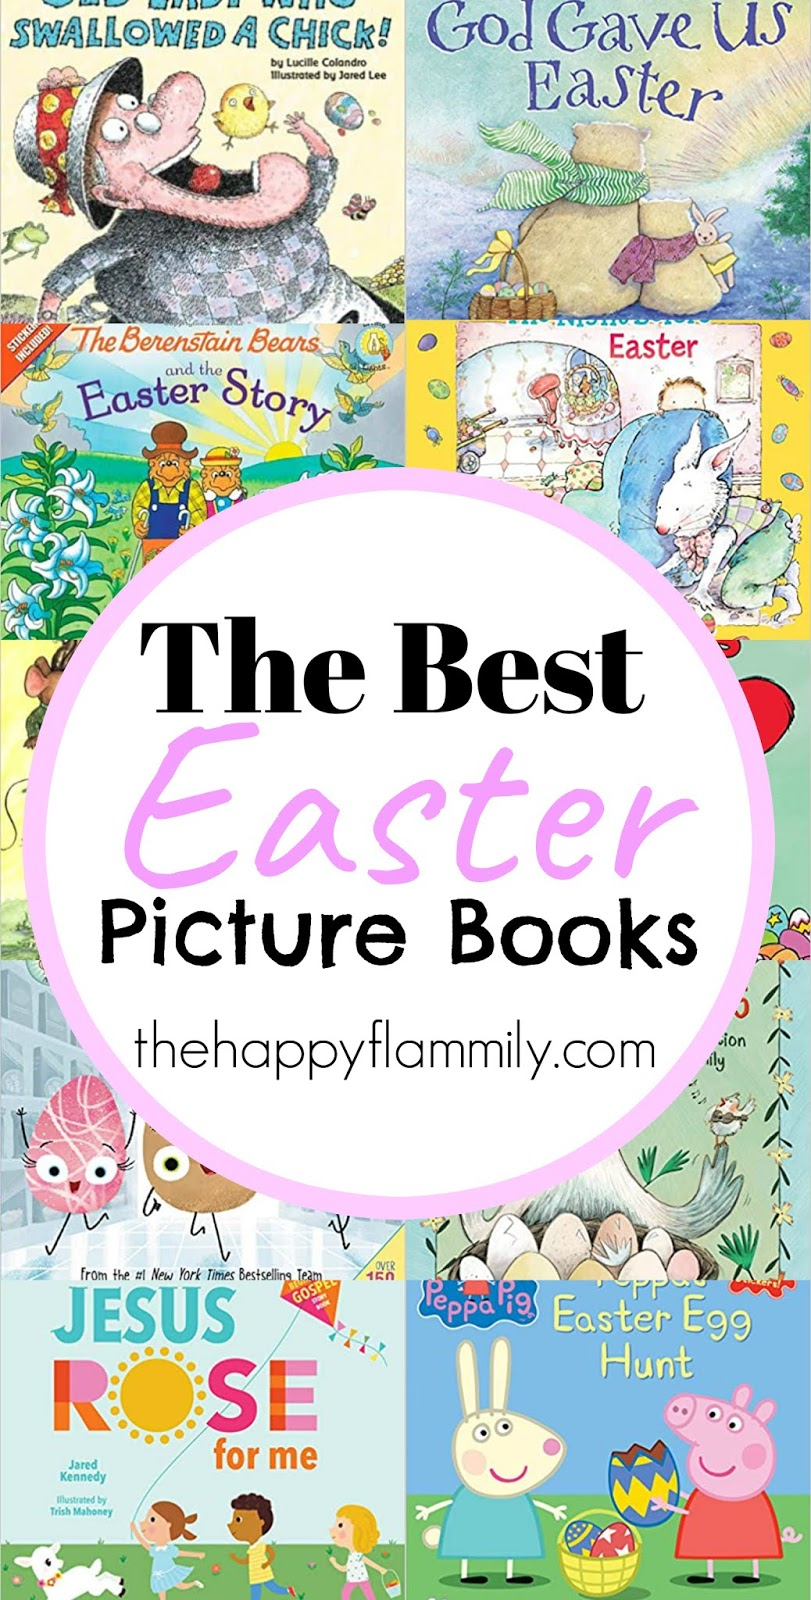 Easter books for 10 year olds. Easter books for adults. Best easter stories. Traditional Easter Books. Books about easter bunny. Easter picture books for kids. Easter books ideas. Easter books. Best easter books. New release easter books 2020. #books #easter #picturebook #easterbooks #kidslit #childrensbooks